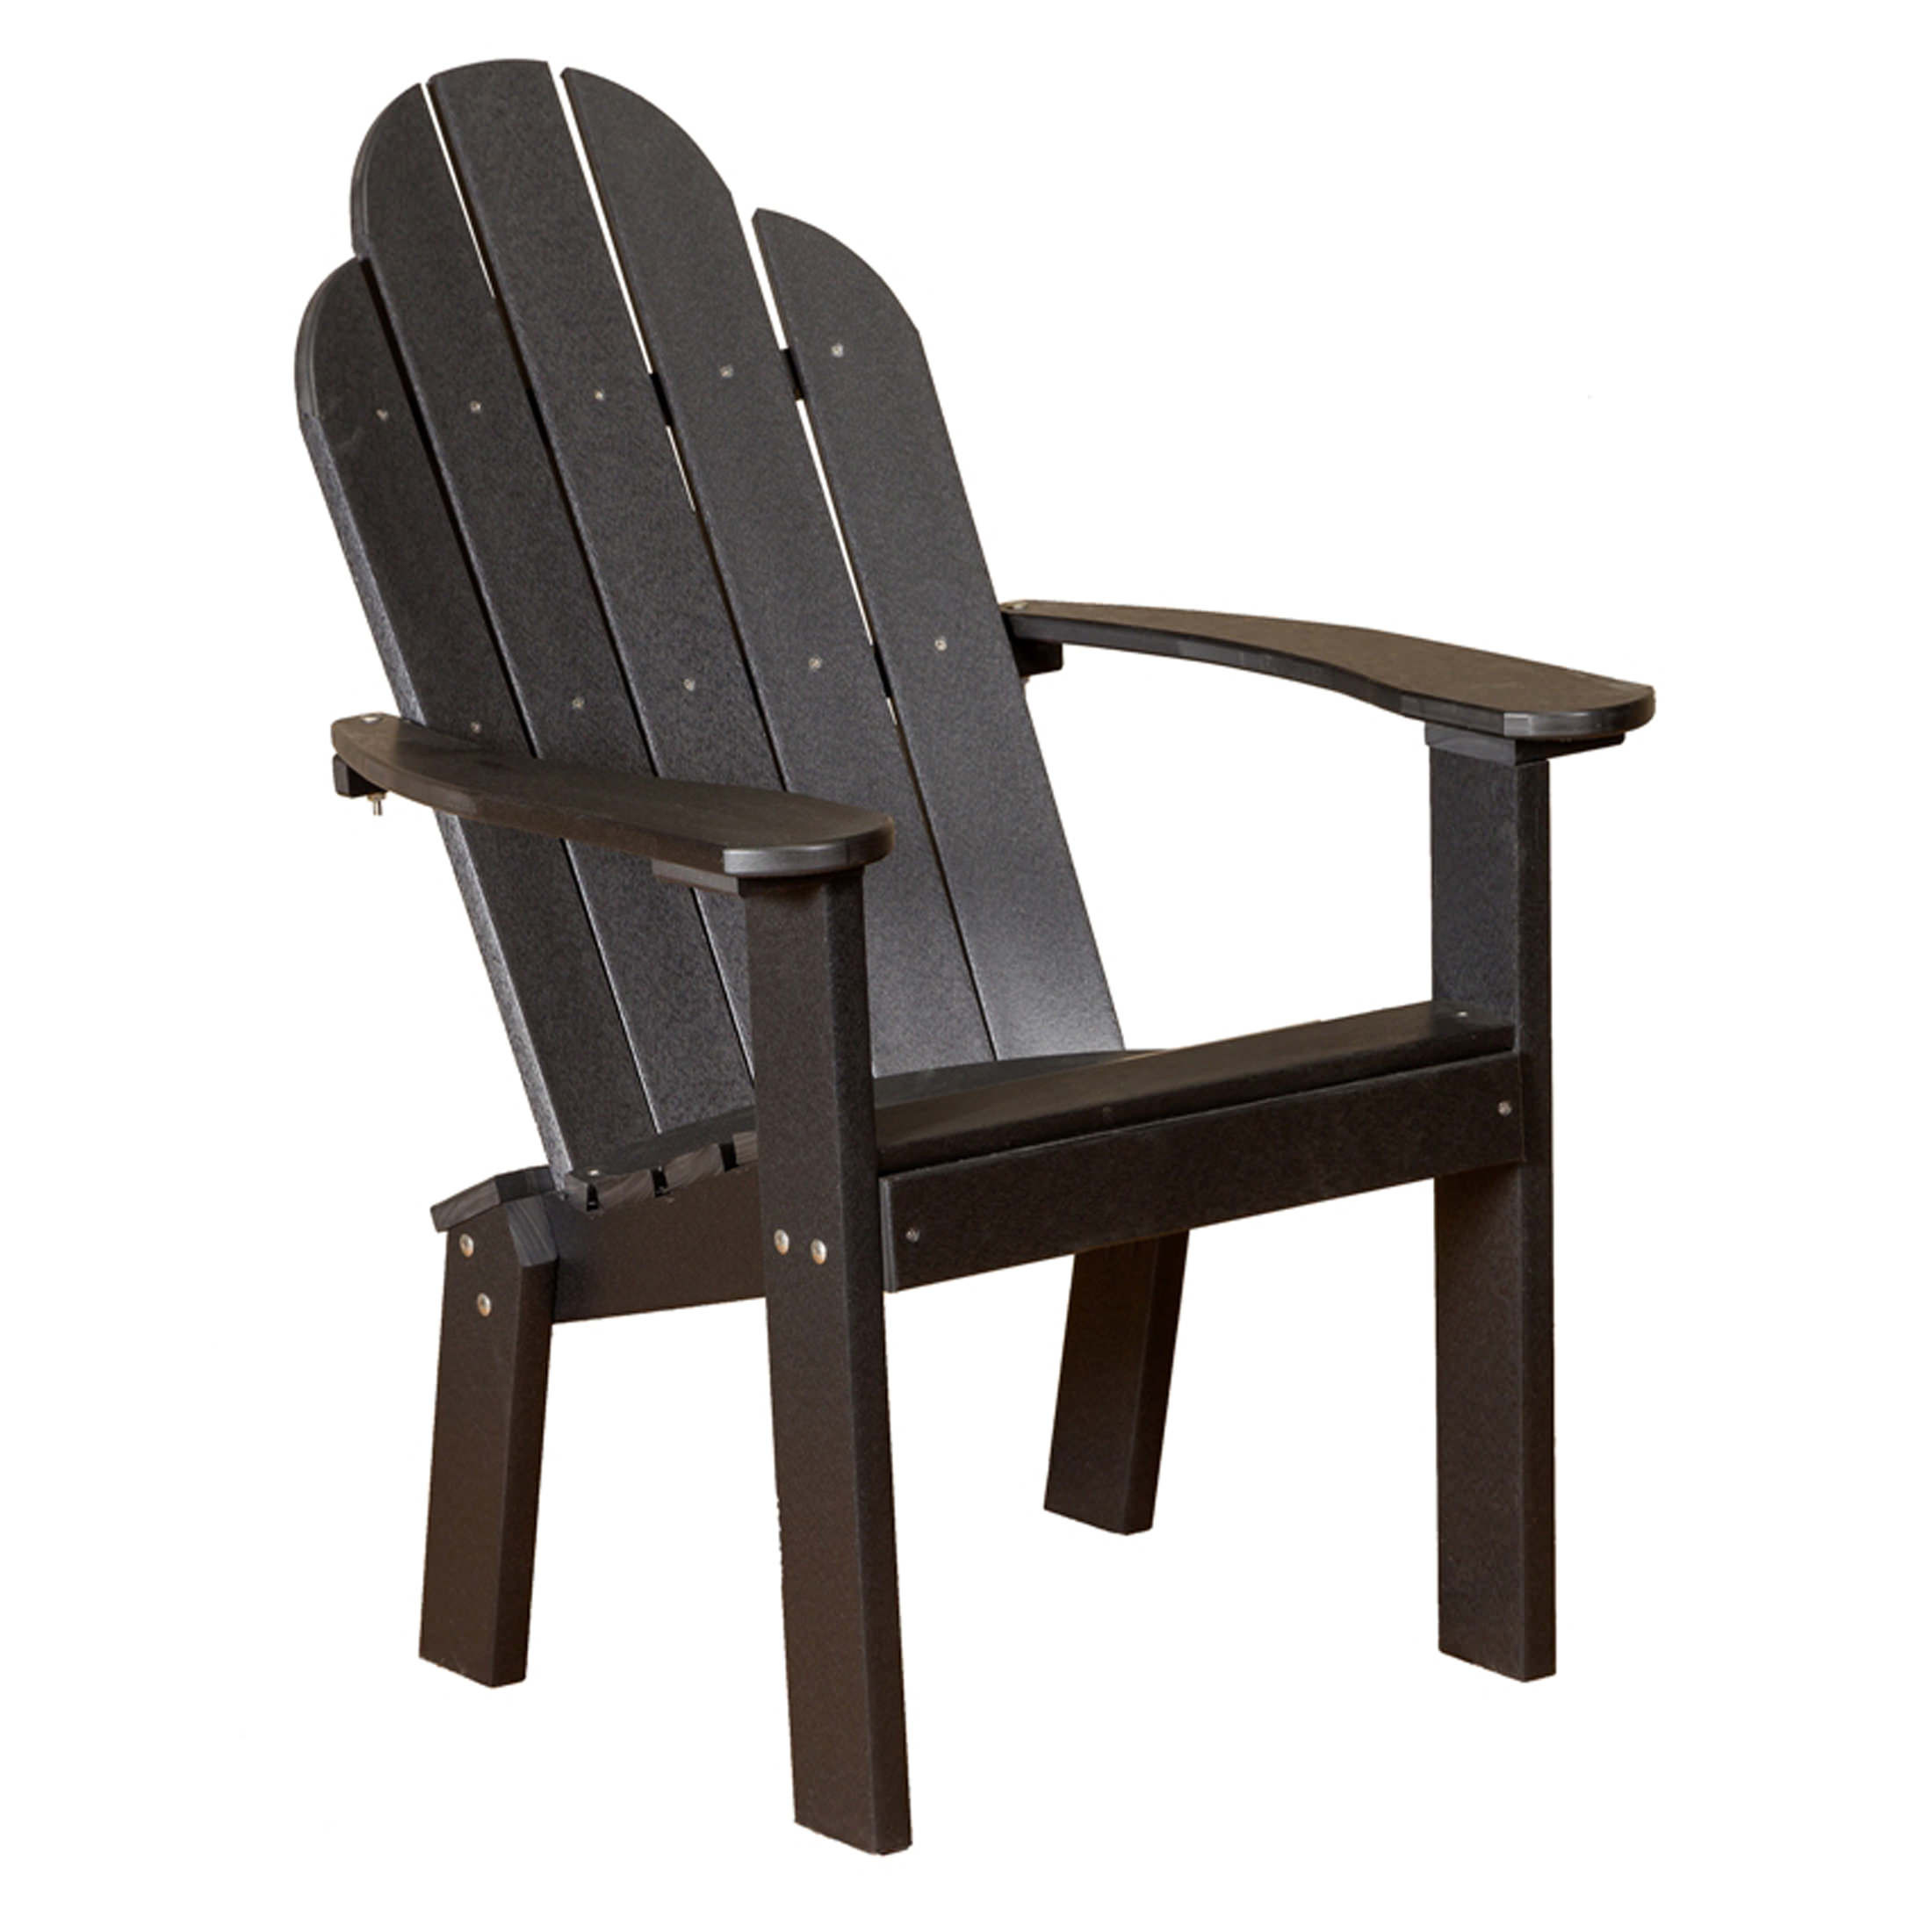 Little Cottage Classic Deck Chair